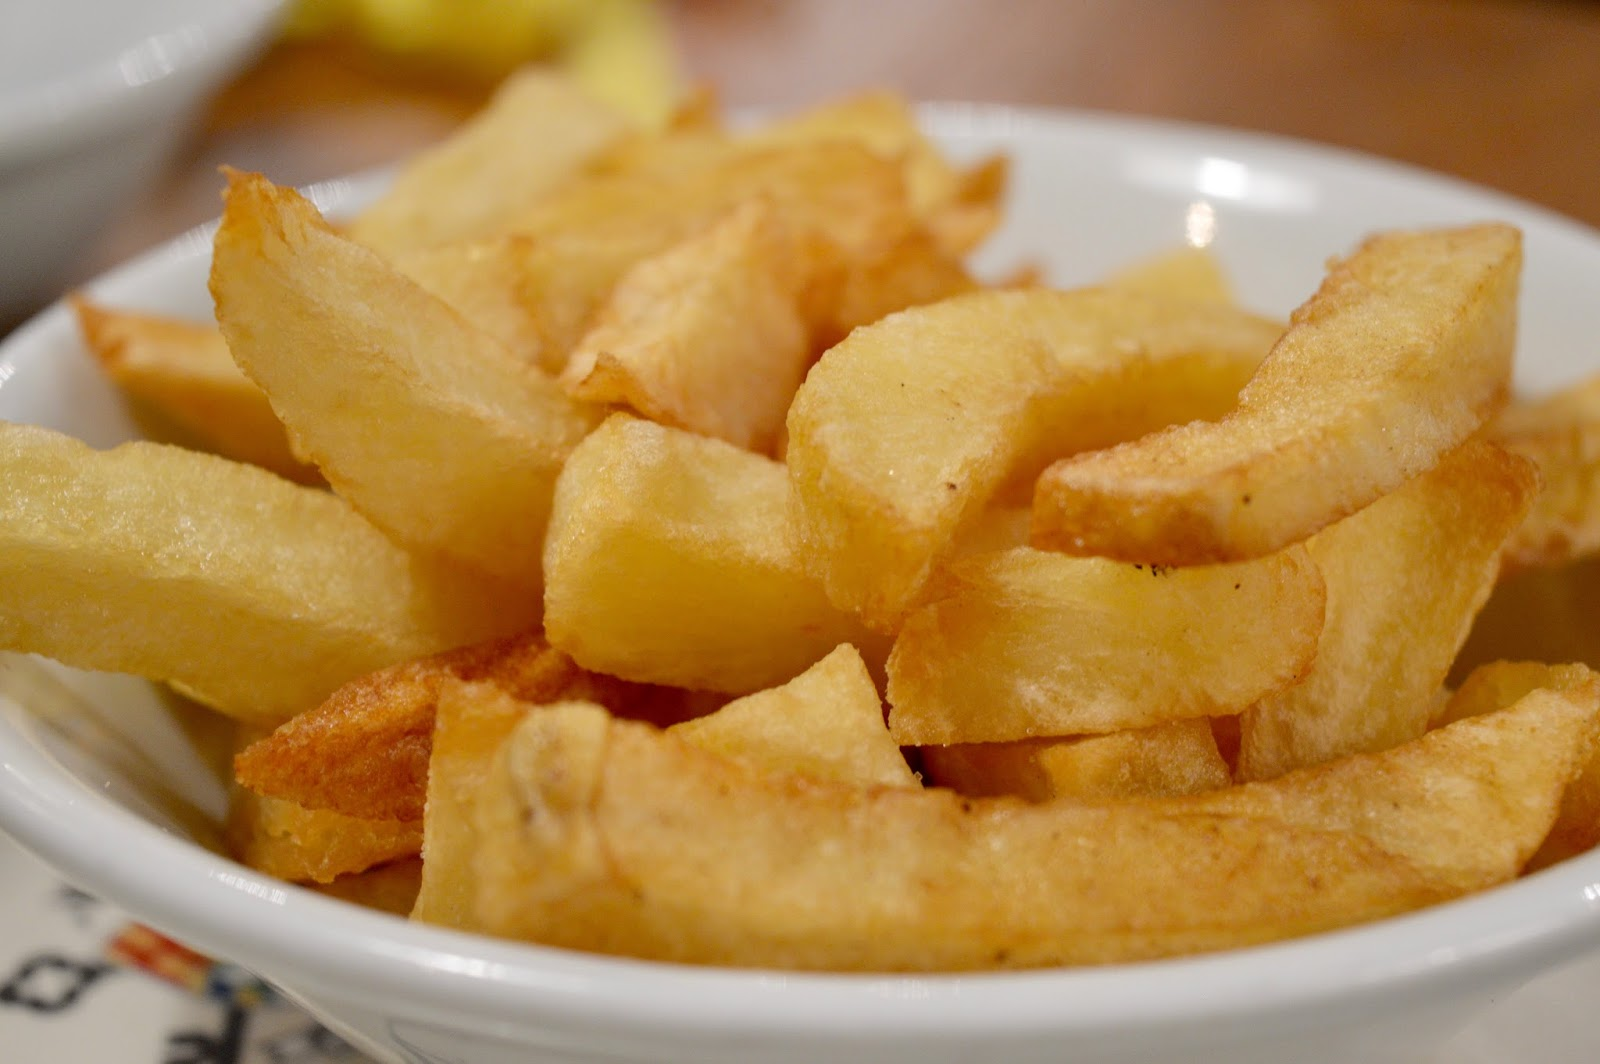 The Kingslodge Inn, Durham   A Review - A lovely budget hotel near the train station and city centre - homemade chips